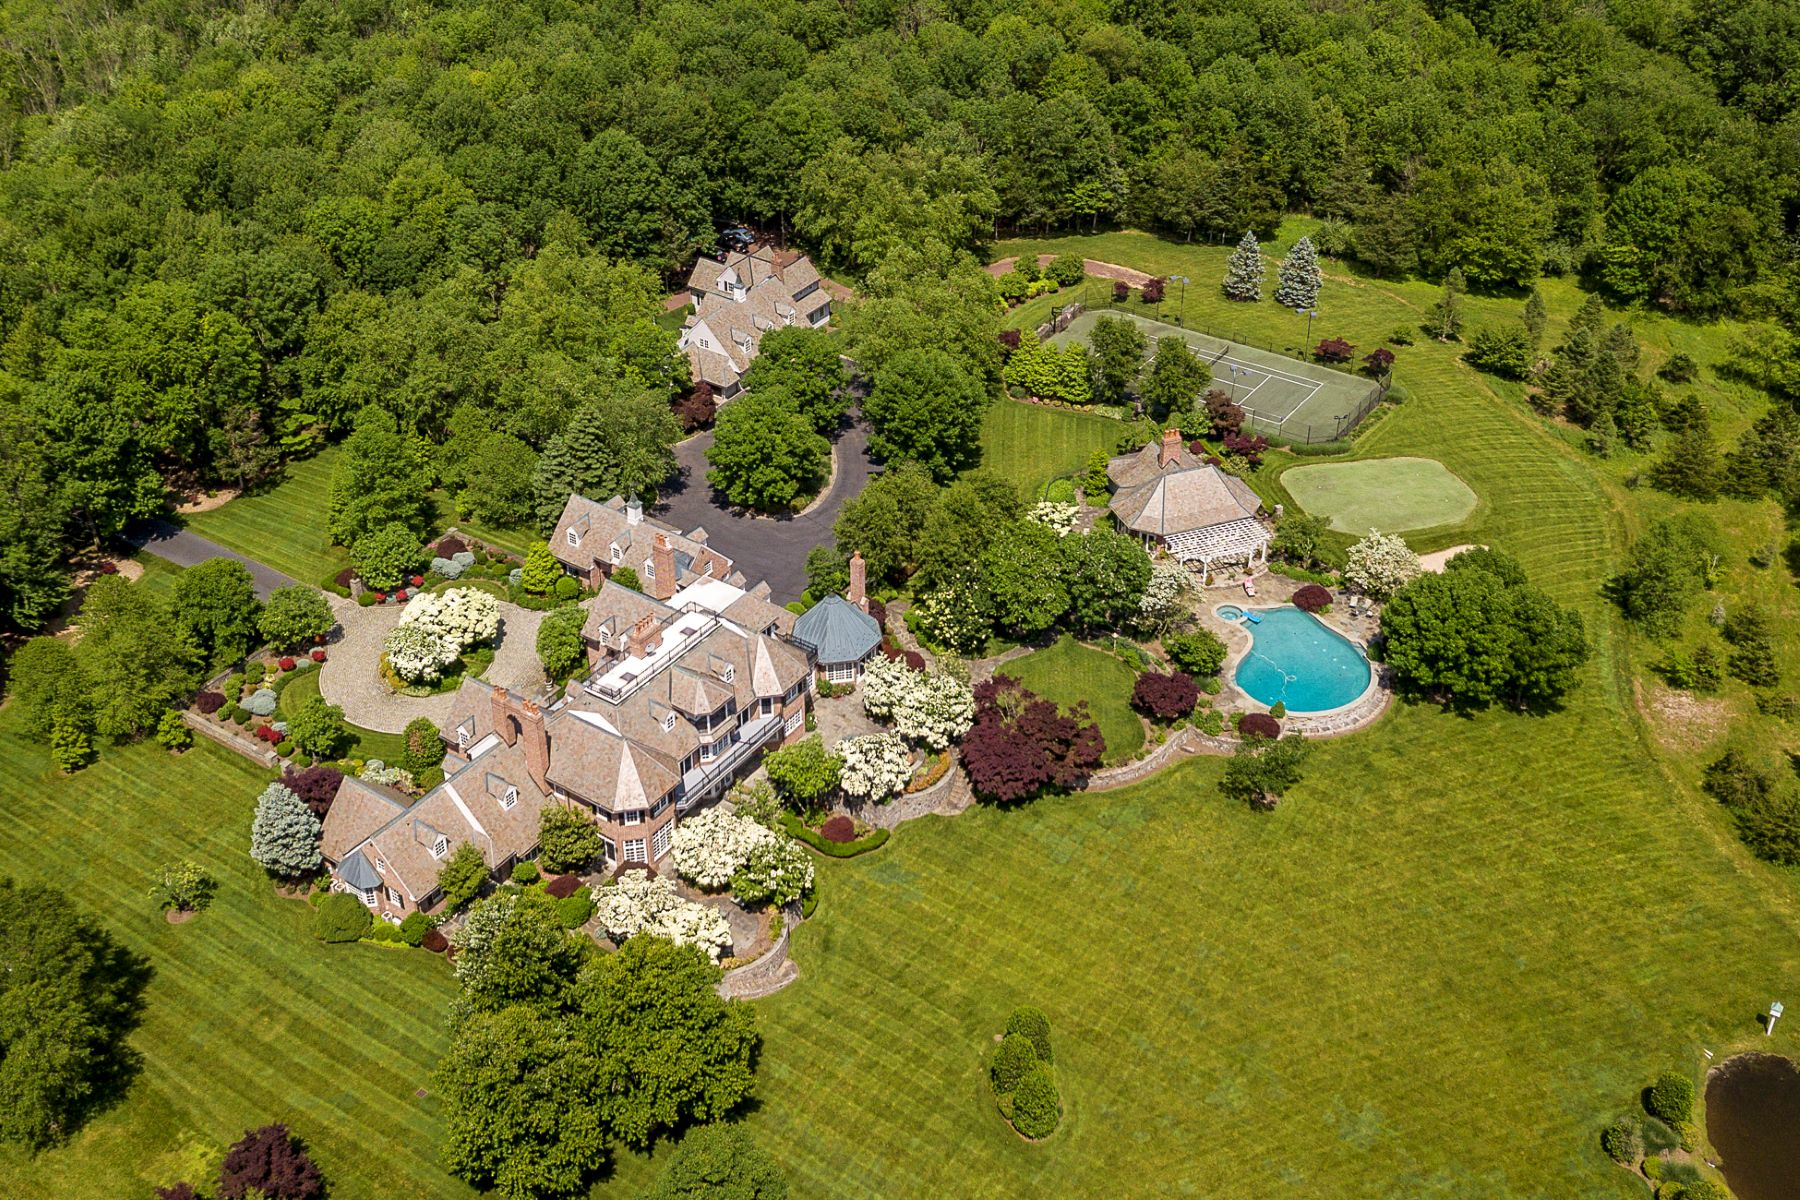 Property for Sale at Private Compound with Every Amenity Imaginable 82 Aunt Molly Road, Hopewell, New Jersey 08525 United States